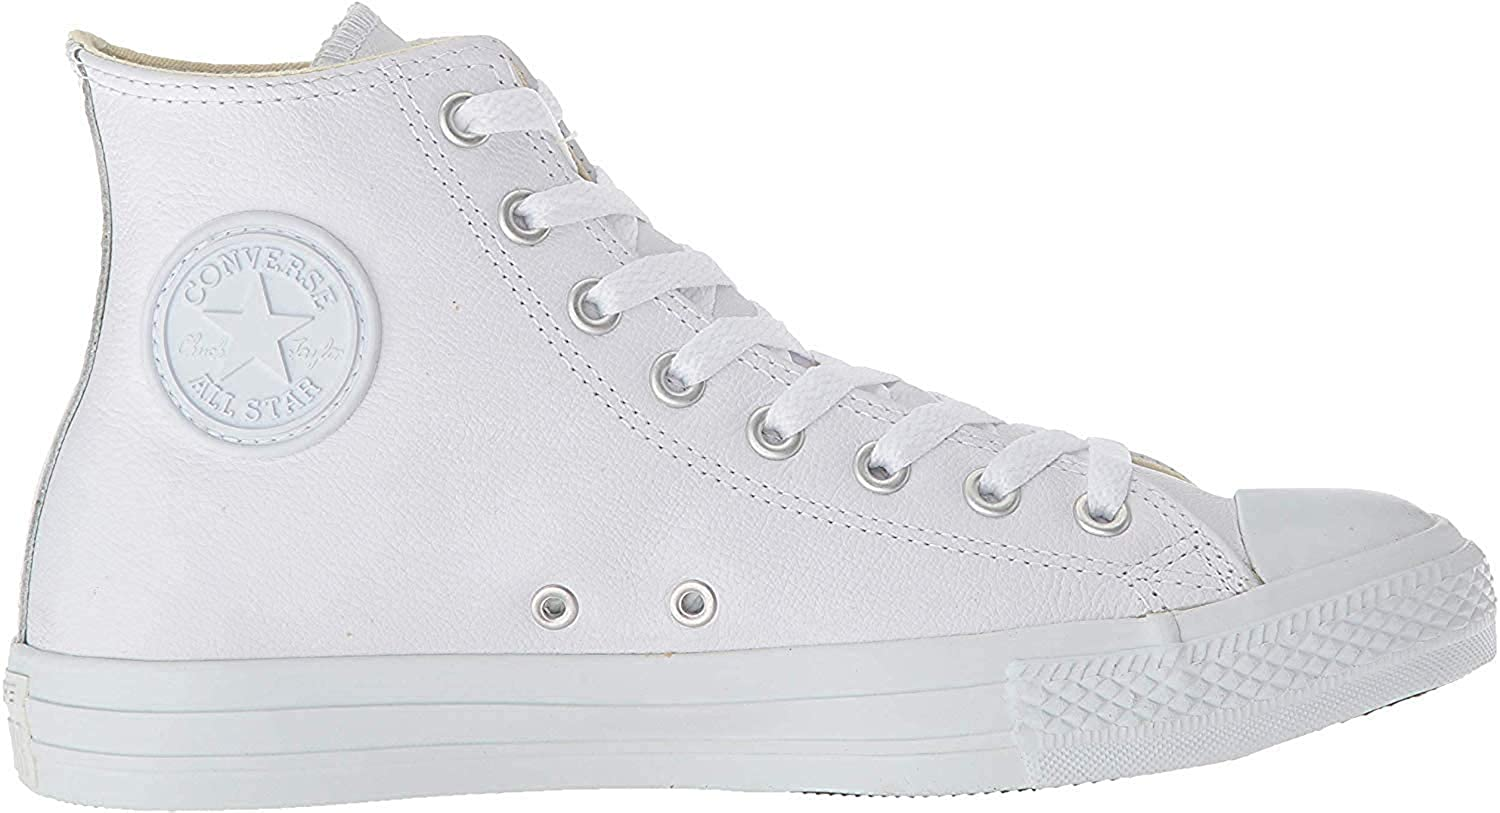 Converse Chuck Taylor All Star HI AQ564, Baskets mode mixte adulte Blanc White Monochrome 100